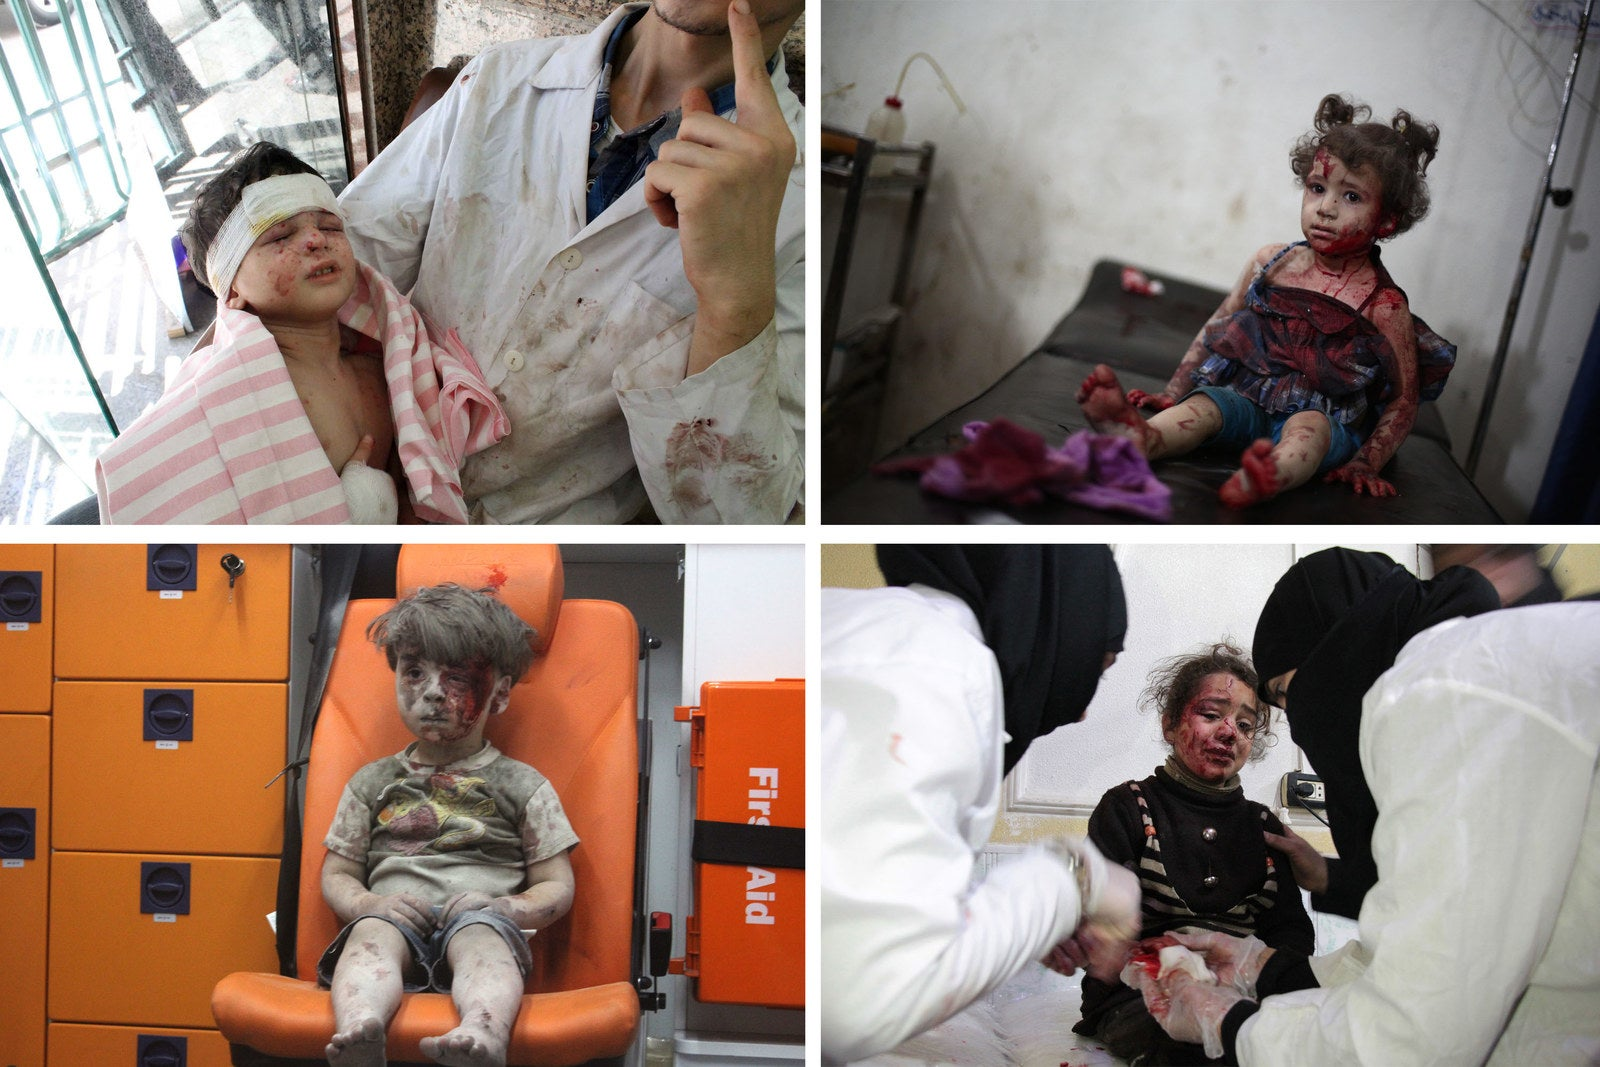 Top left, a wounded Syrian child receives medical treatment at a hospital in Aleppo, 2012. Top right, an injured girl is treated at a makeshift hospital in Douma, 2014. Bottom left, Omran Daqneesh sits alone in the back of the ambulance after he got injured during air strikes, Aleppo, 2016. Bottom right, a Syrian girl receives treatment at a make-shift hospital in Douma, 2018.